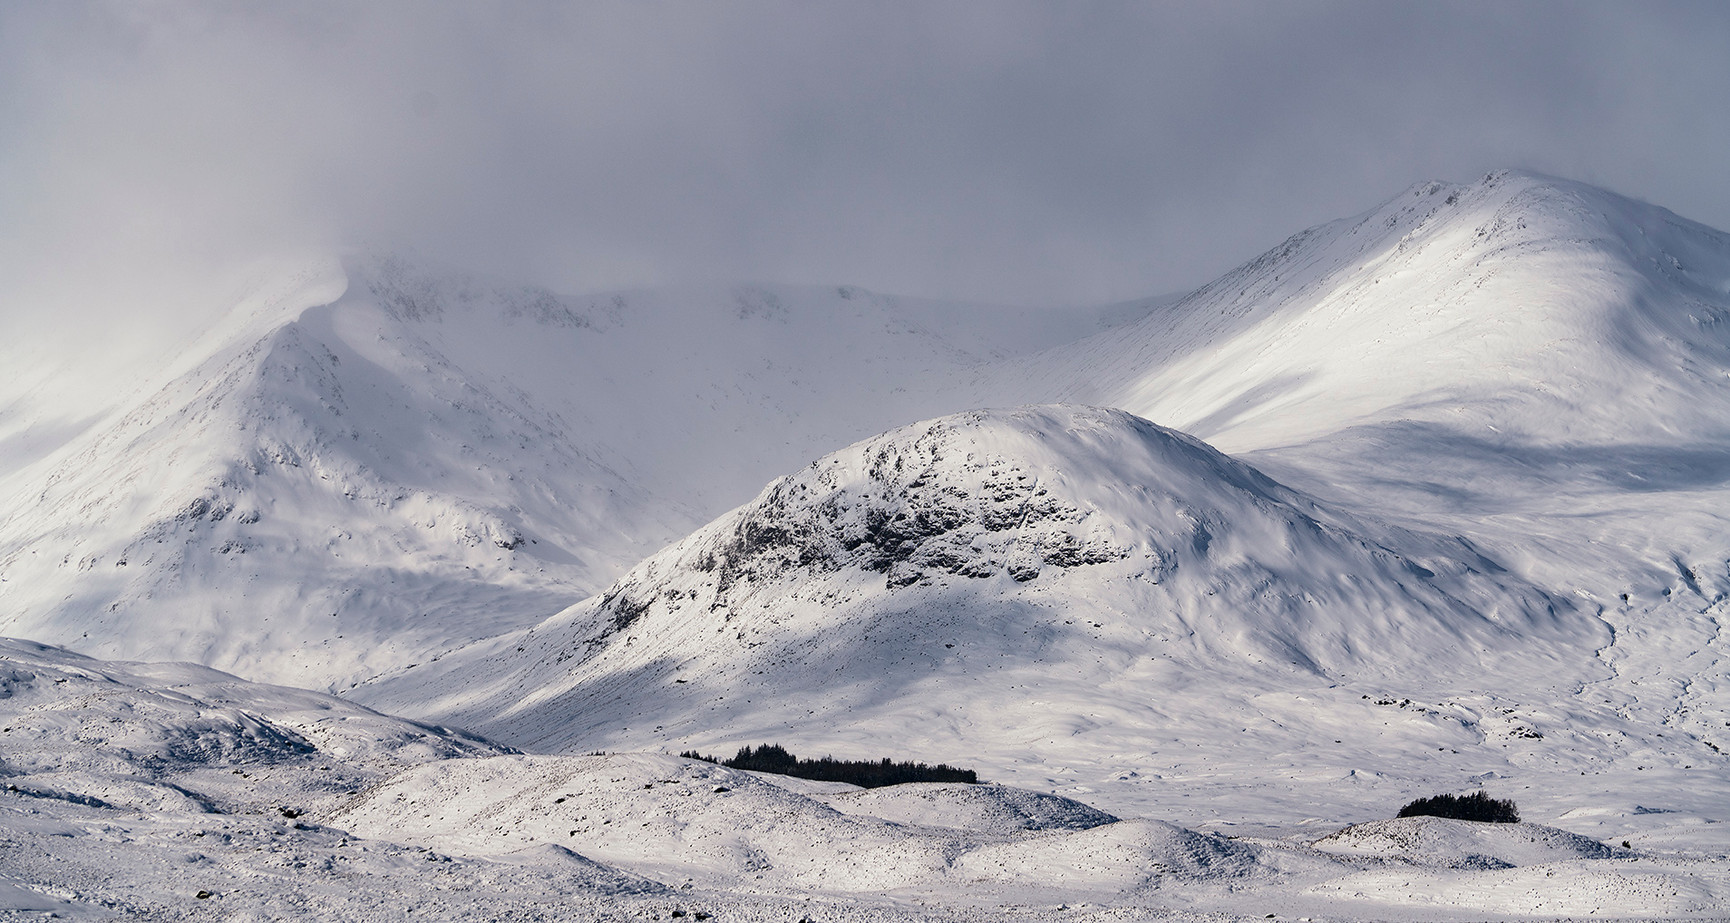 Winter over the Blackmount